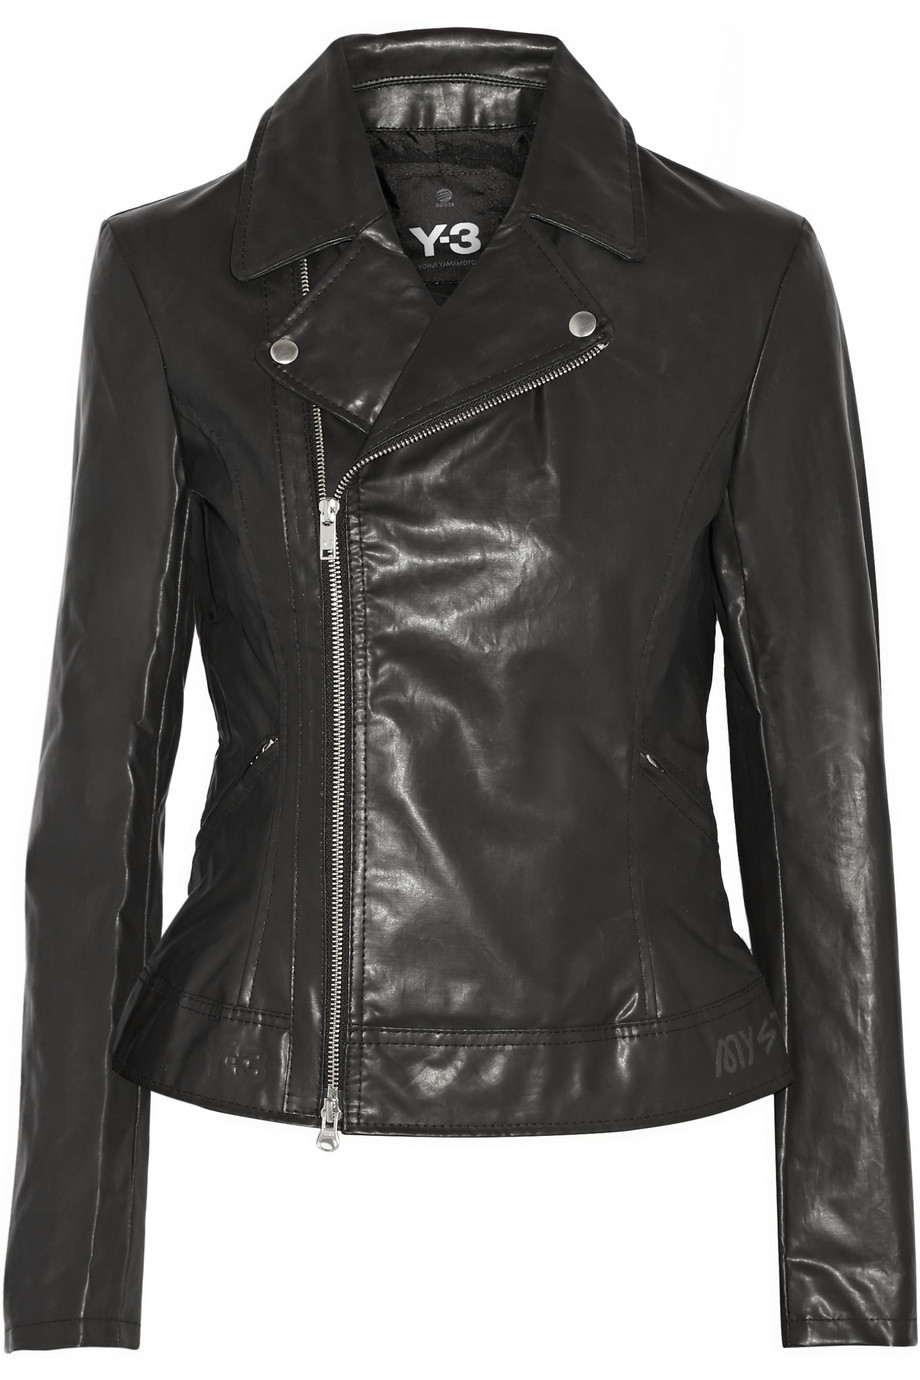 15 Leather Moto Jackets We Love - Best Leather and Faux Leather ...